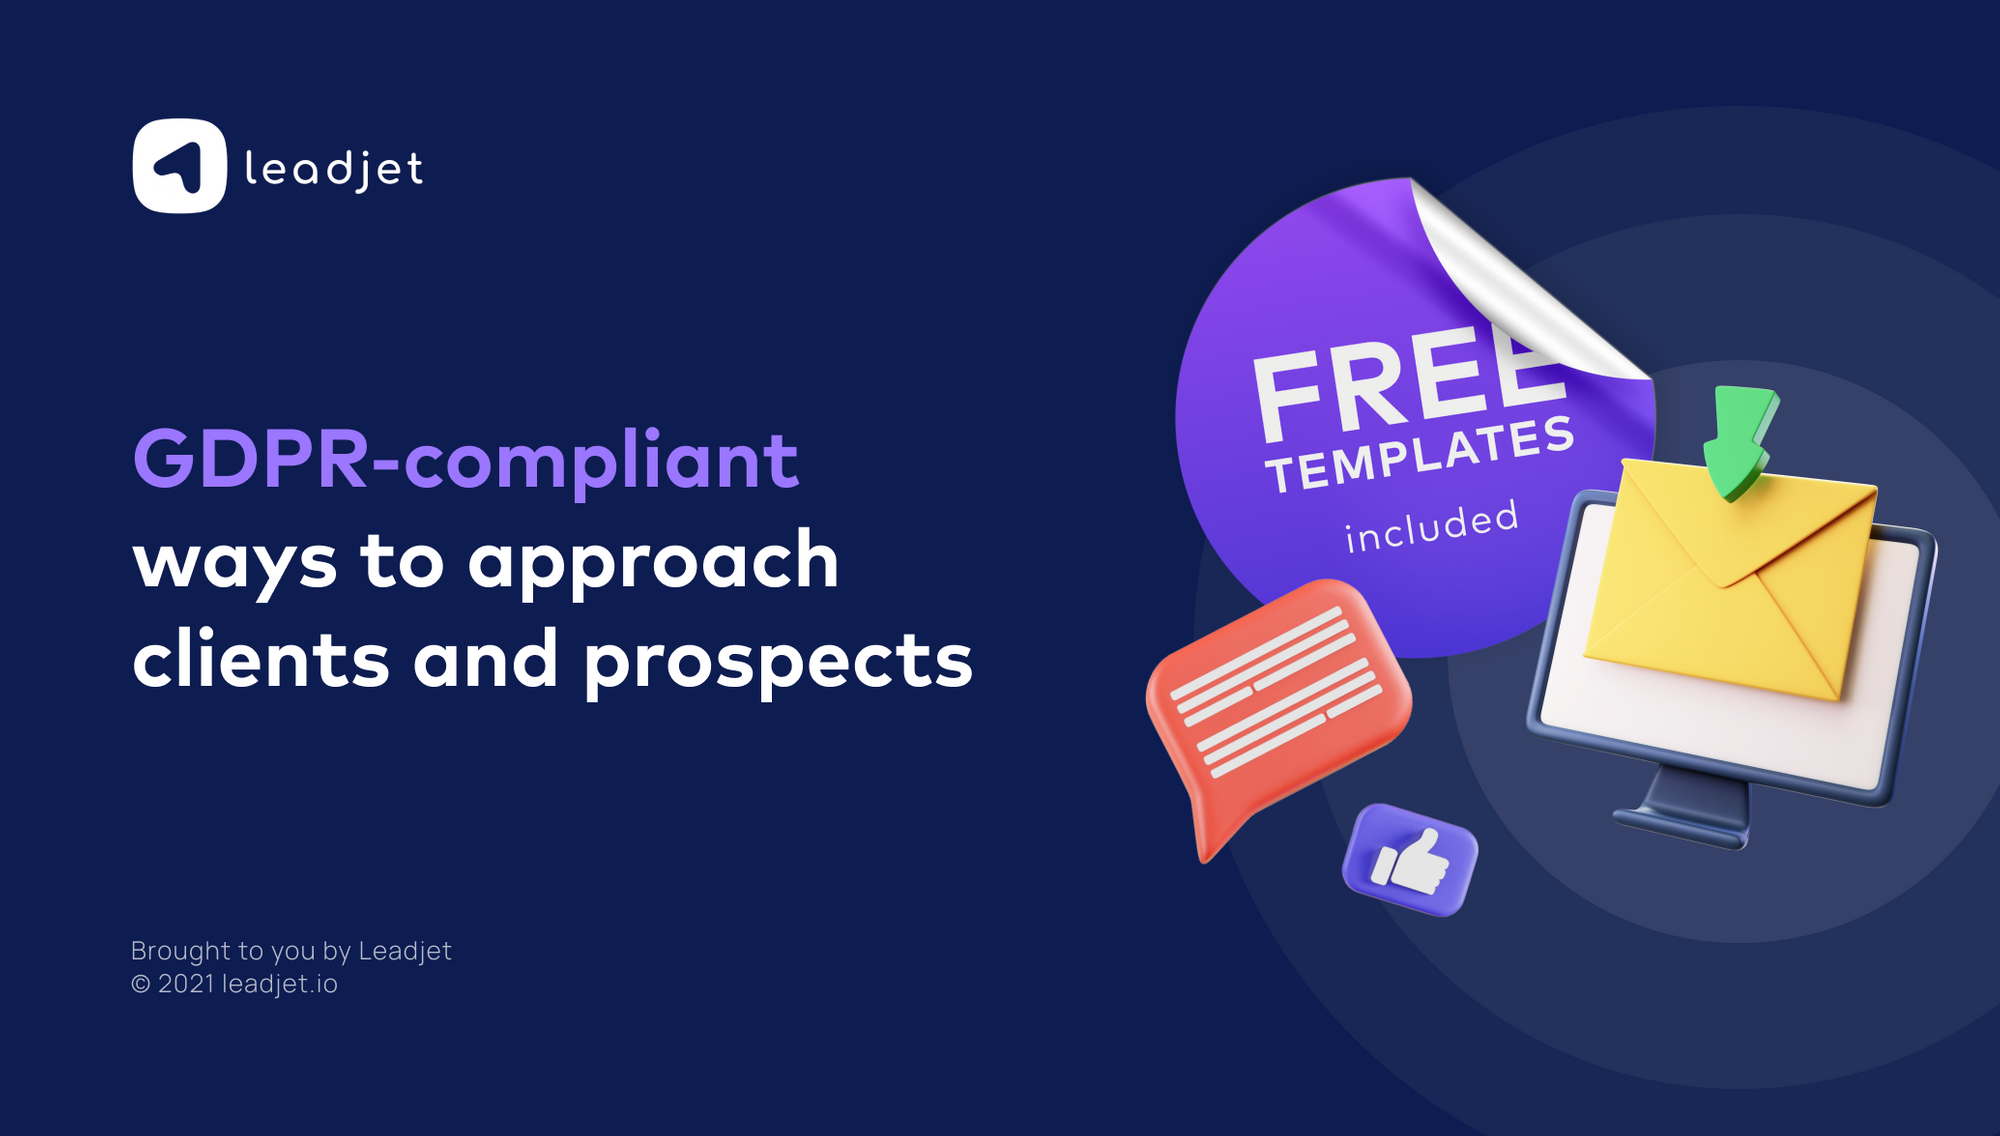 GDPR-compliant ways to approach clients and prospects (FREE templates included)